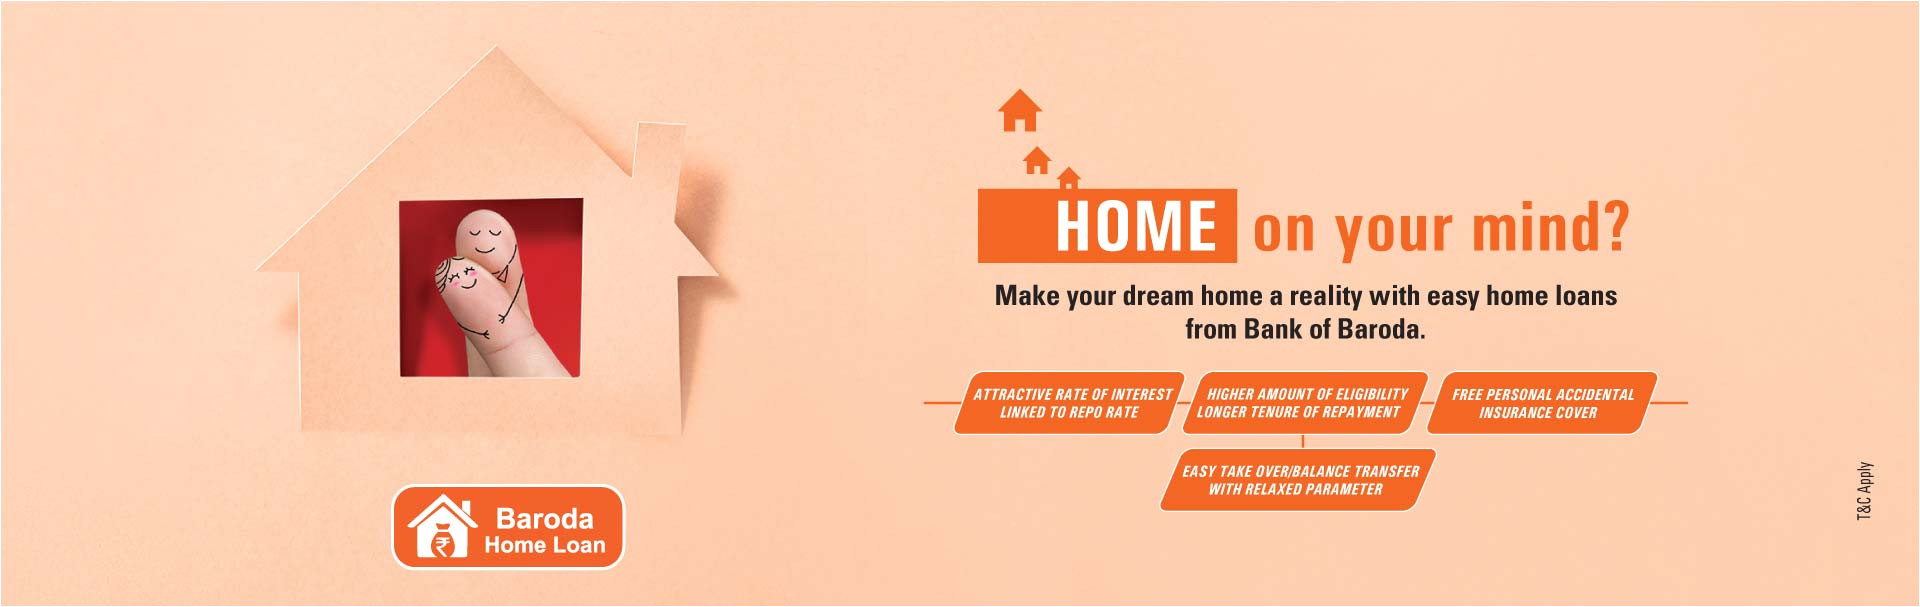 Easy Card Bank Of Baroda Home Loan Types Different Home Loan Options In India